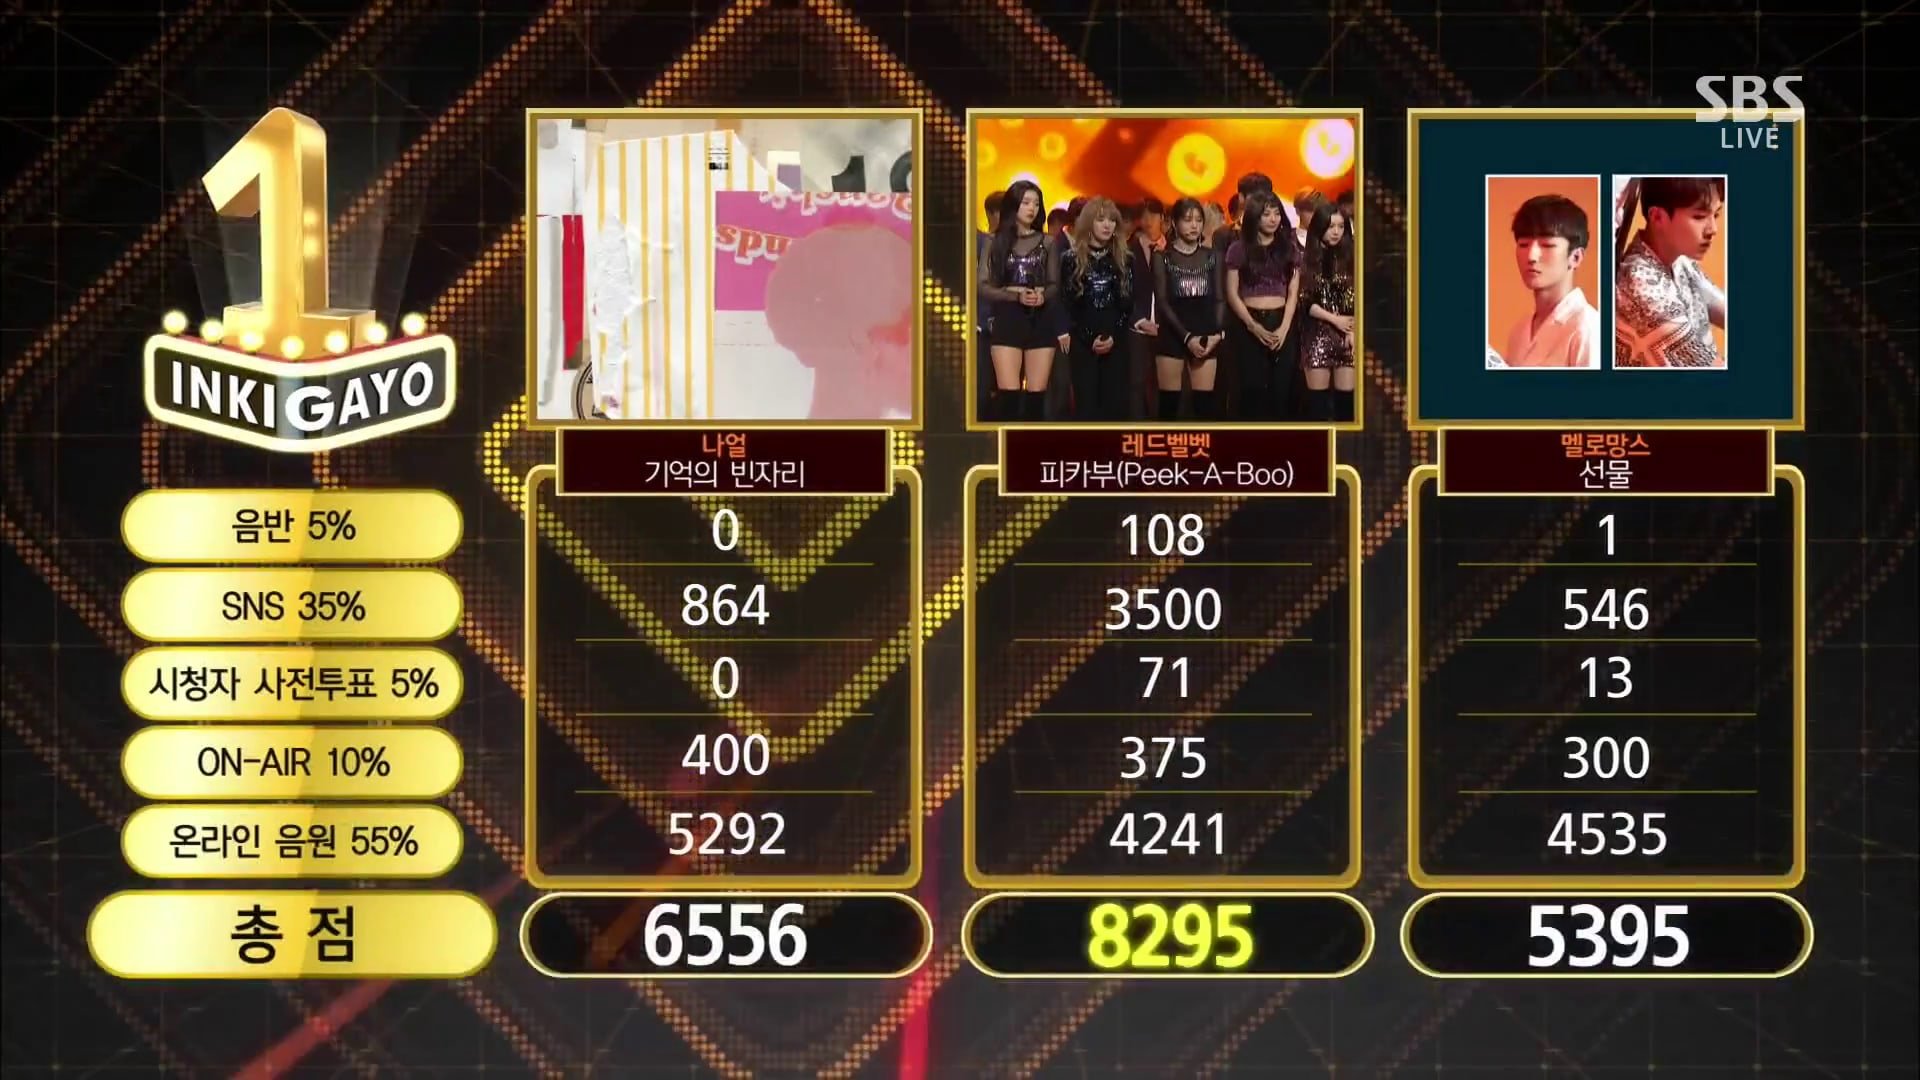 """Watch: Red Velvet Takes 1st Win For """"Peek-A-Boo"""" On """"Inkigayo""""; Performances By Taemin, HyunA, And More!"""